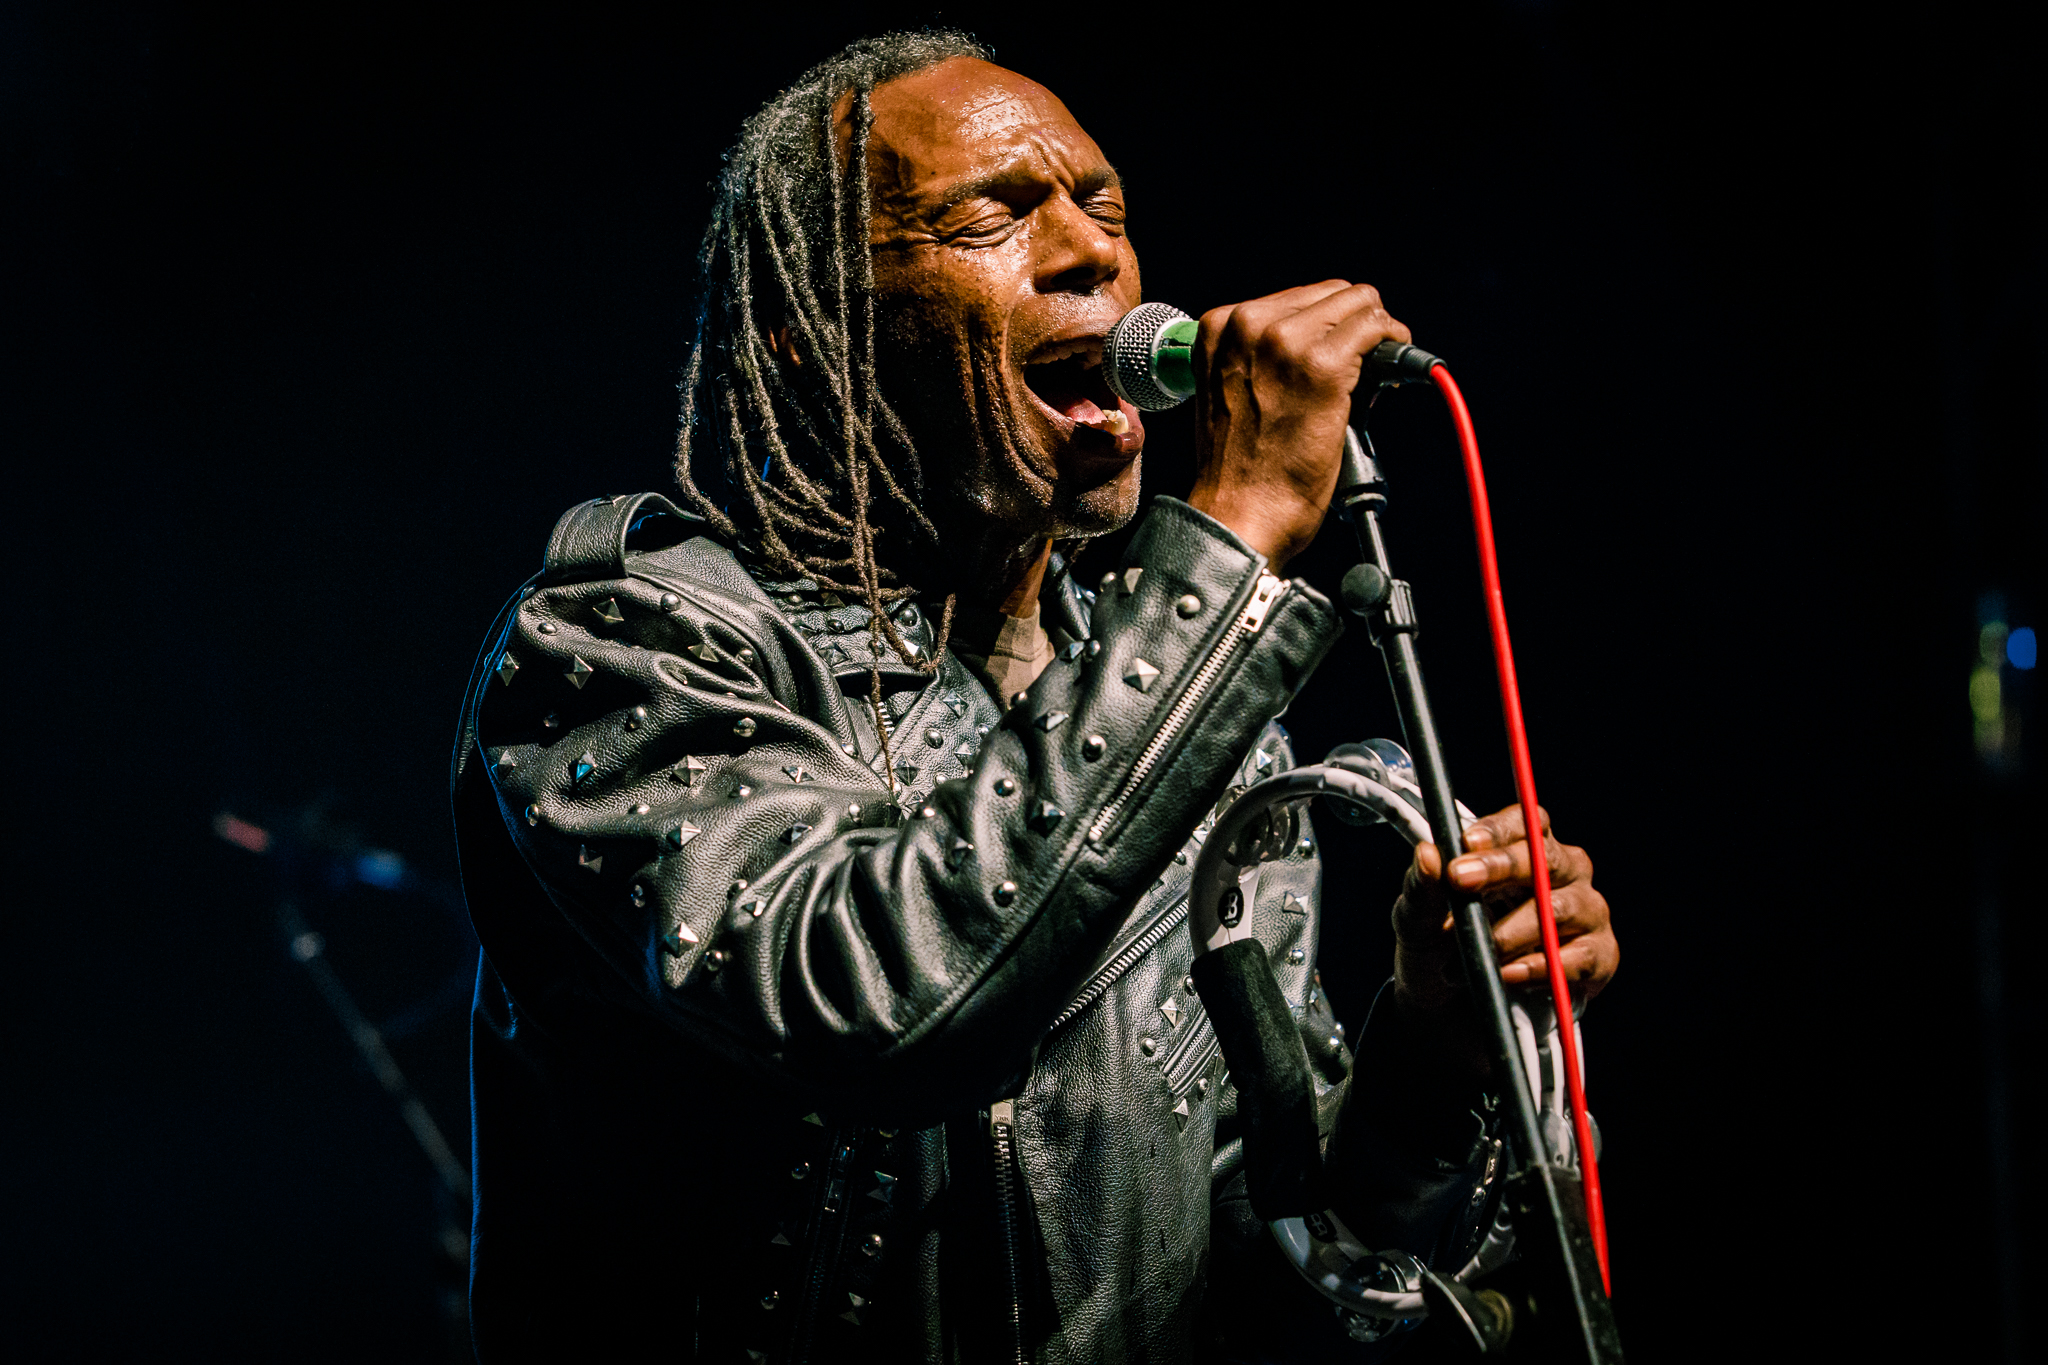 The Beat feat. Ranking Roger performing at The Forum Hertfordshire in Hatfield, England on May 26th, 2018 (photo by Matt Condon /  @arcane93 )